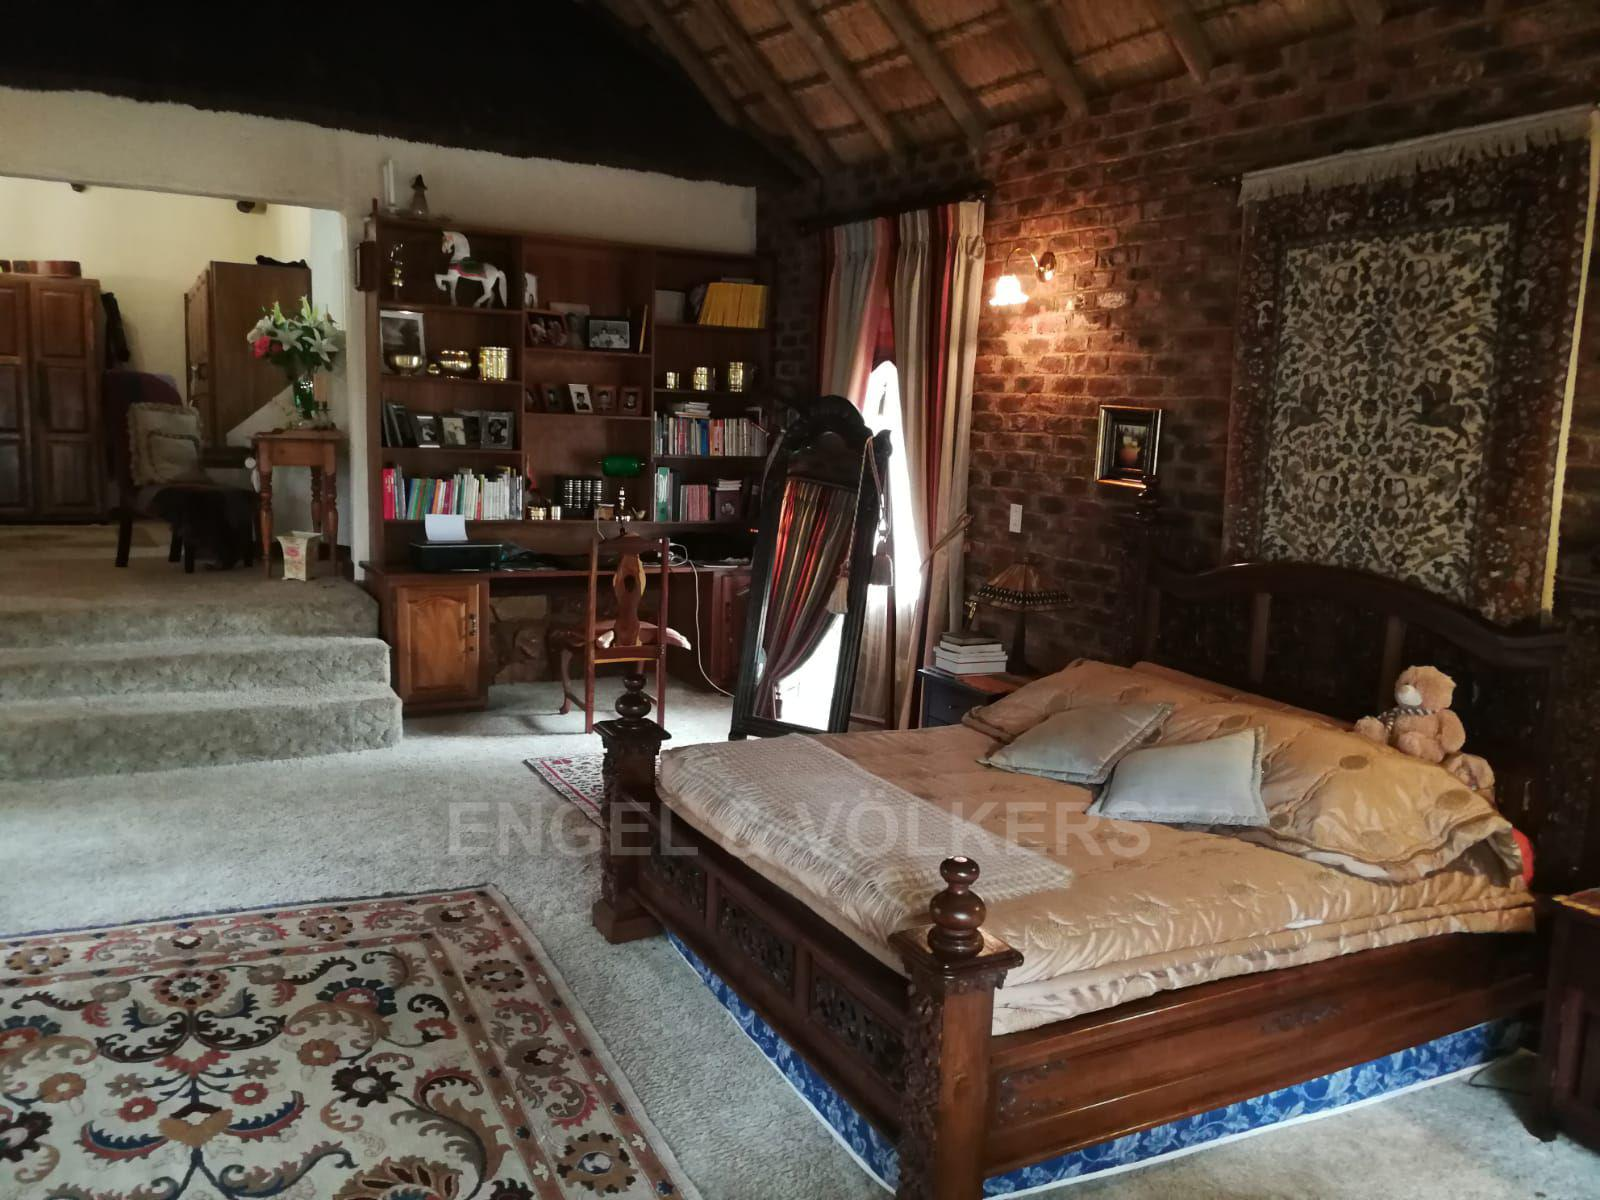 Land in Hartbeespoort Dam Area - Giant main bedroom